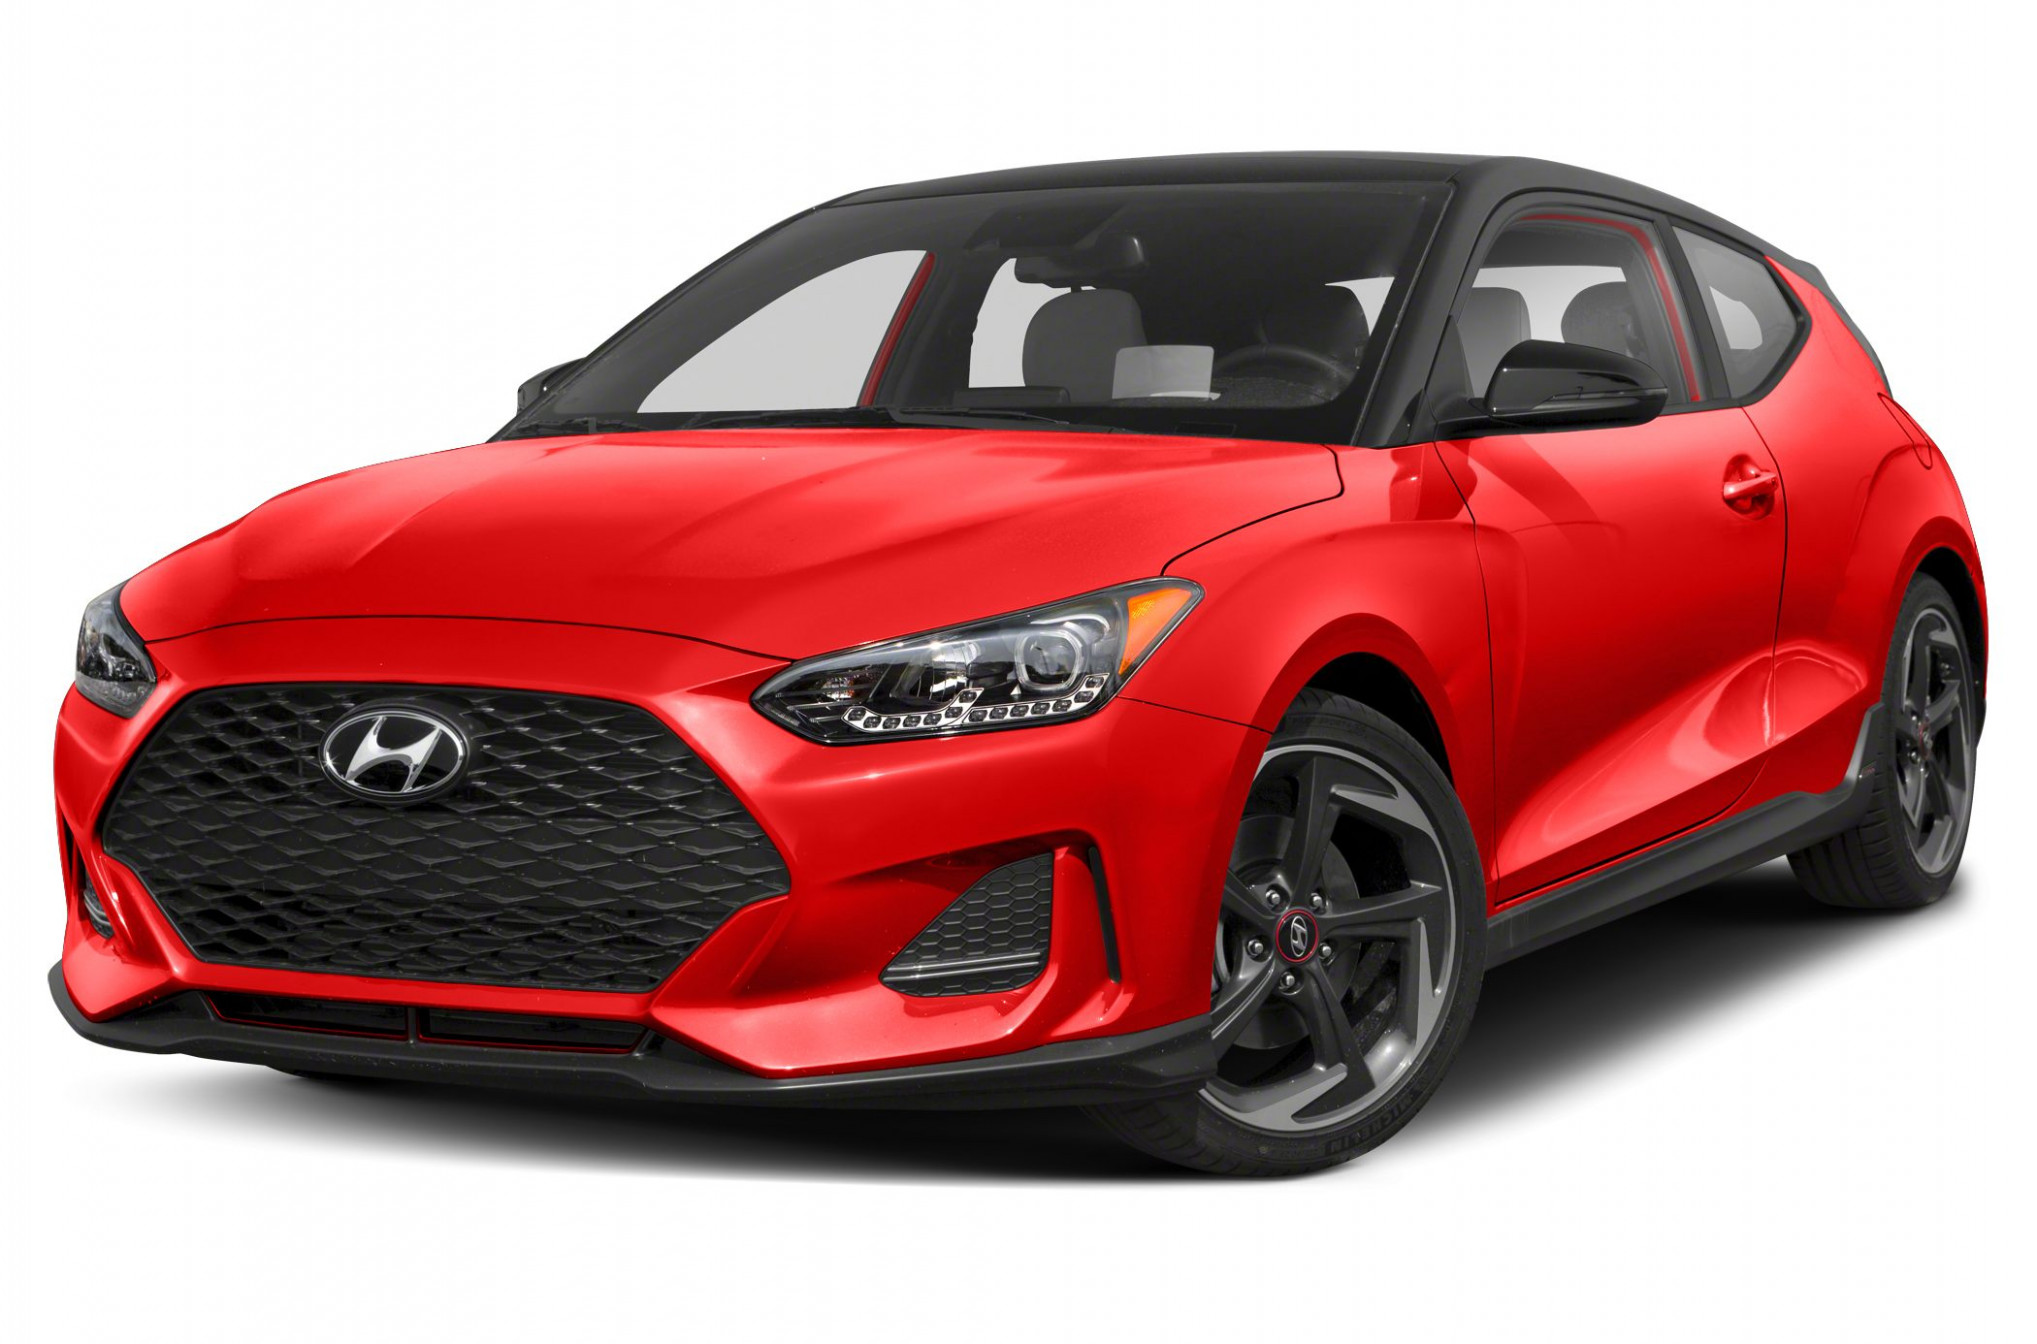 8 Hyundai Veloster Turbo R-Spec 8dr Hatchback Specs and Prices | 2020 Hyundai Veloster Turbo R Spec